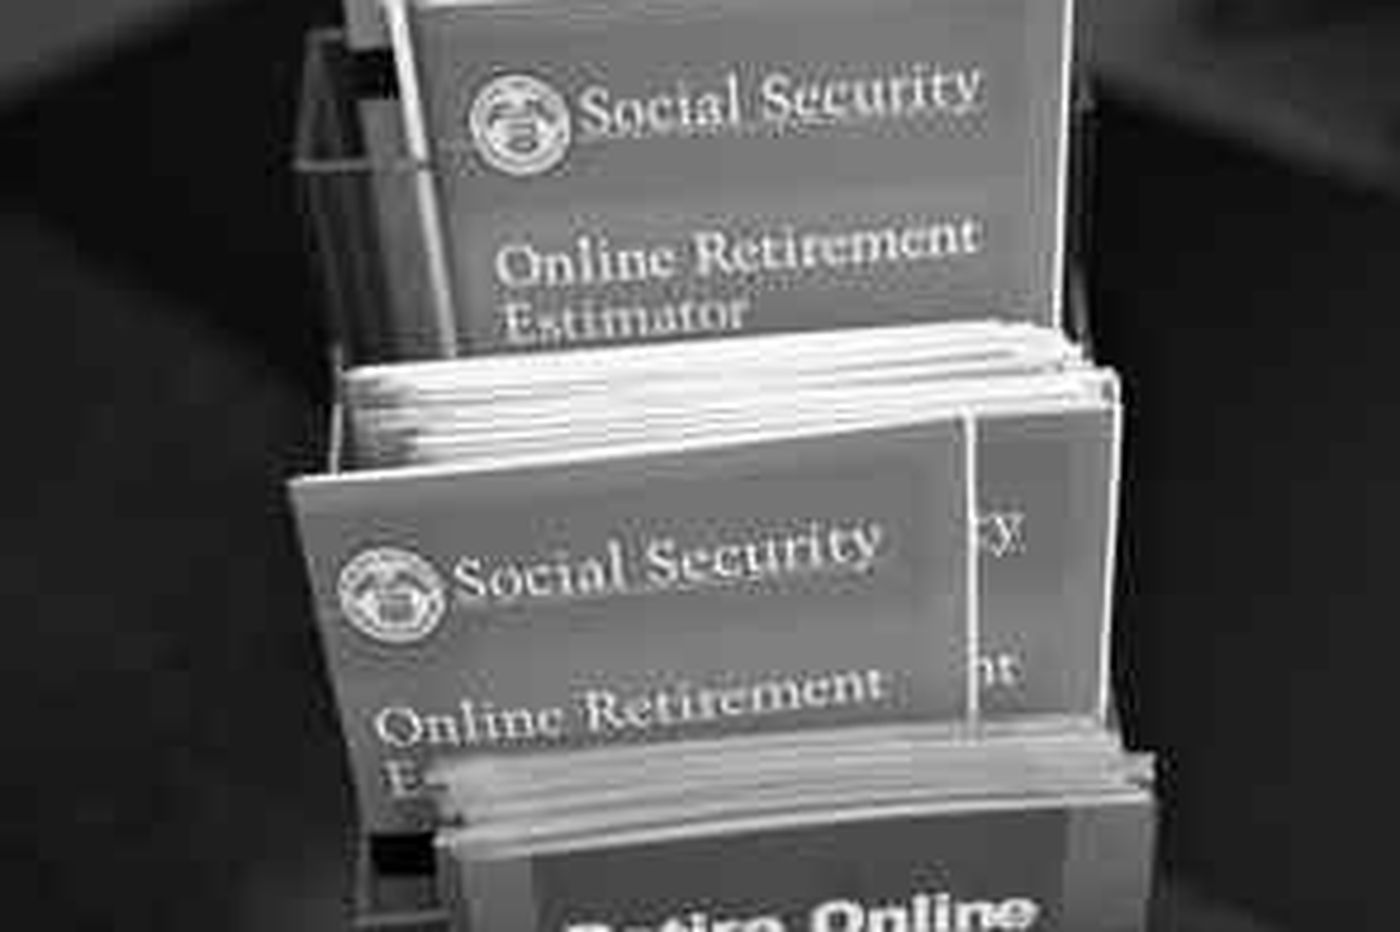 PhillyDeals: Options that would keep Social Security viable